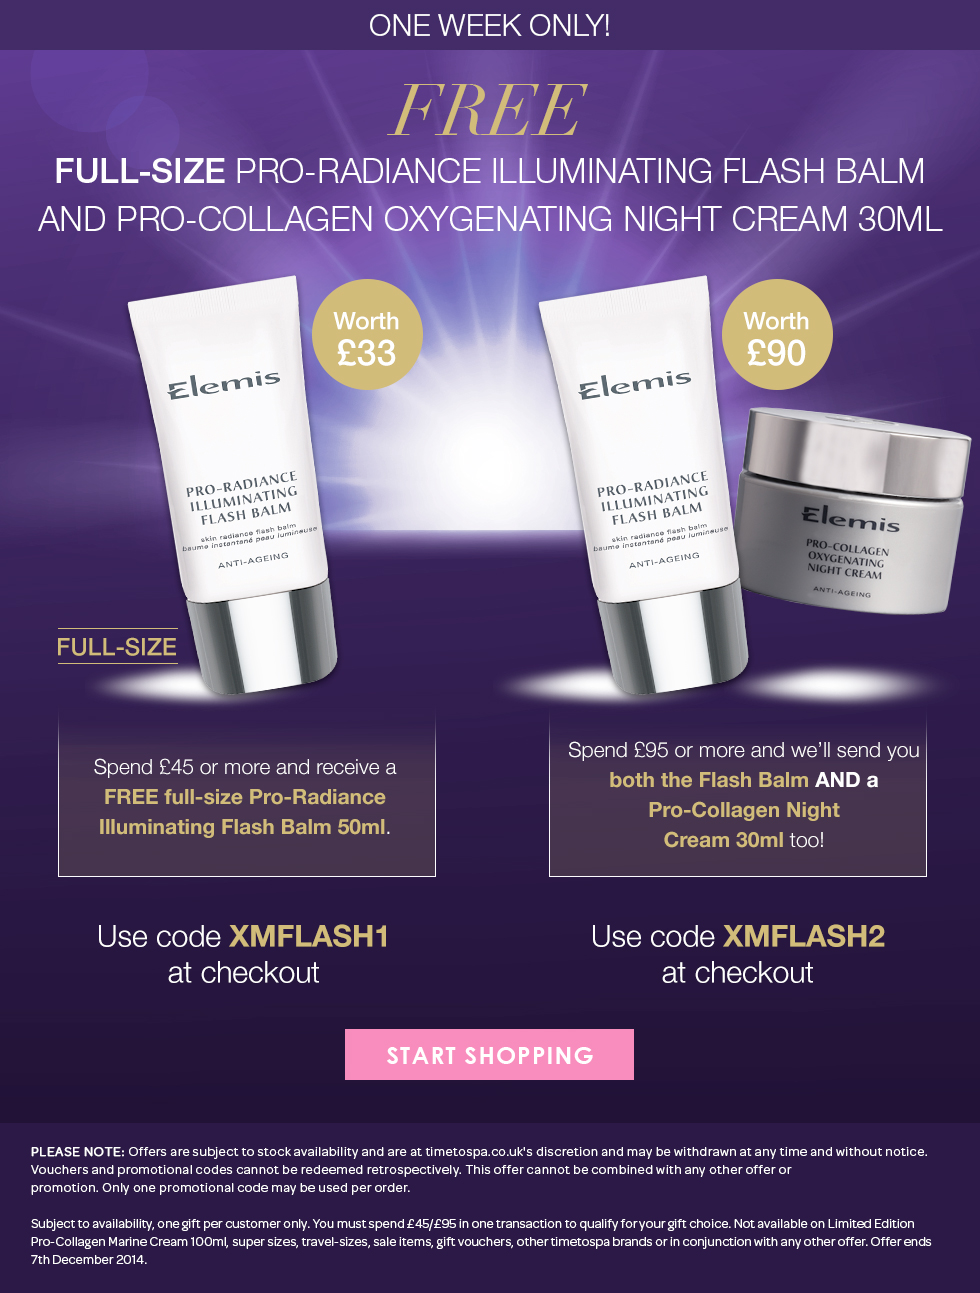 Free Full Size Pro-Radiance Illuminating Flash Balm and Pro-Collagen Oxygenating Night Cream